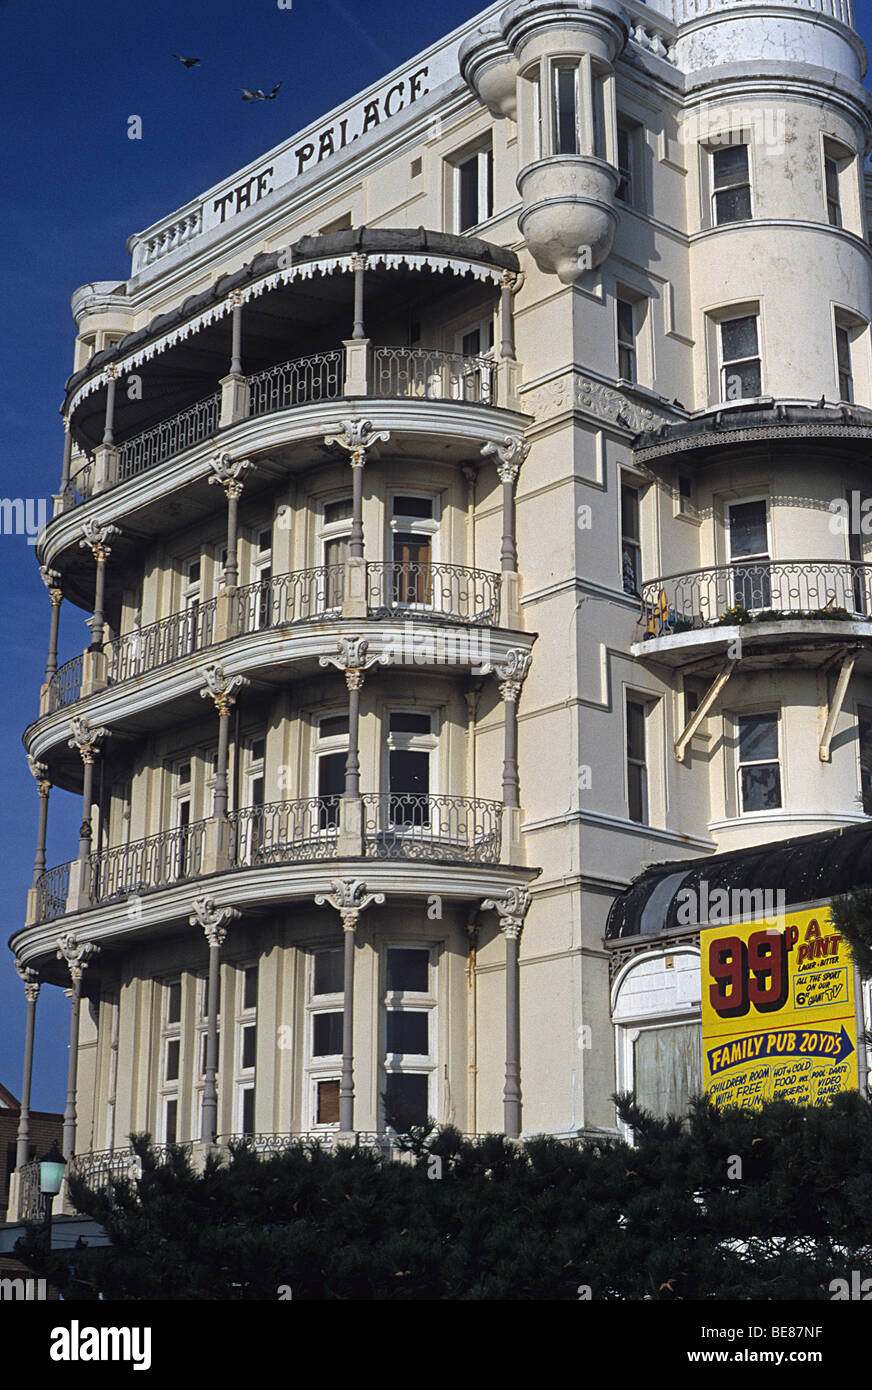 Southend on Sea, Essex, balconies of Palace Hotel Stock Photo